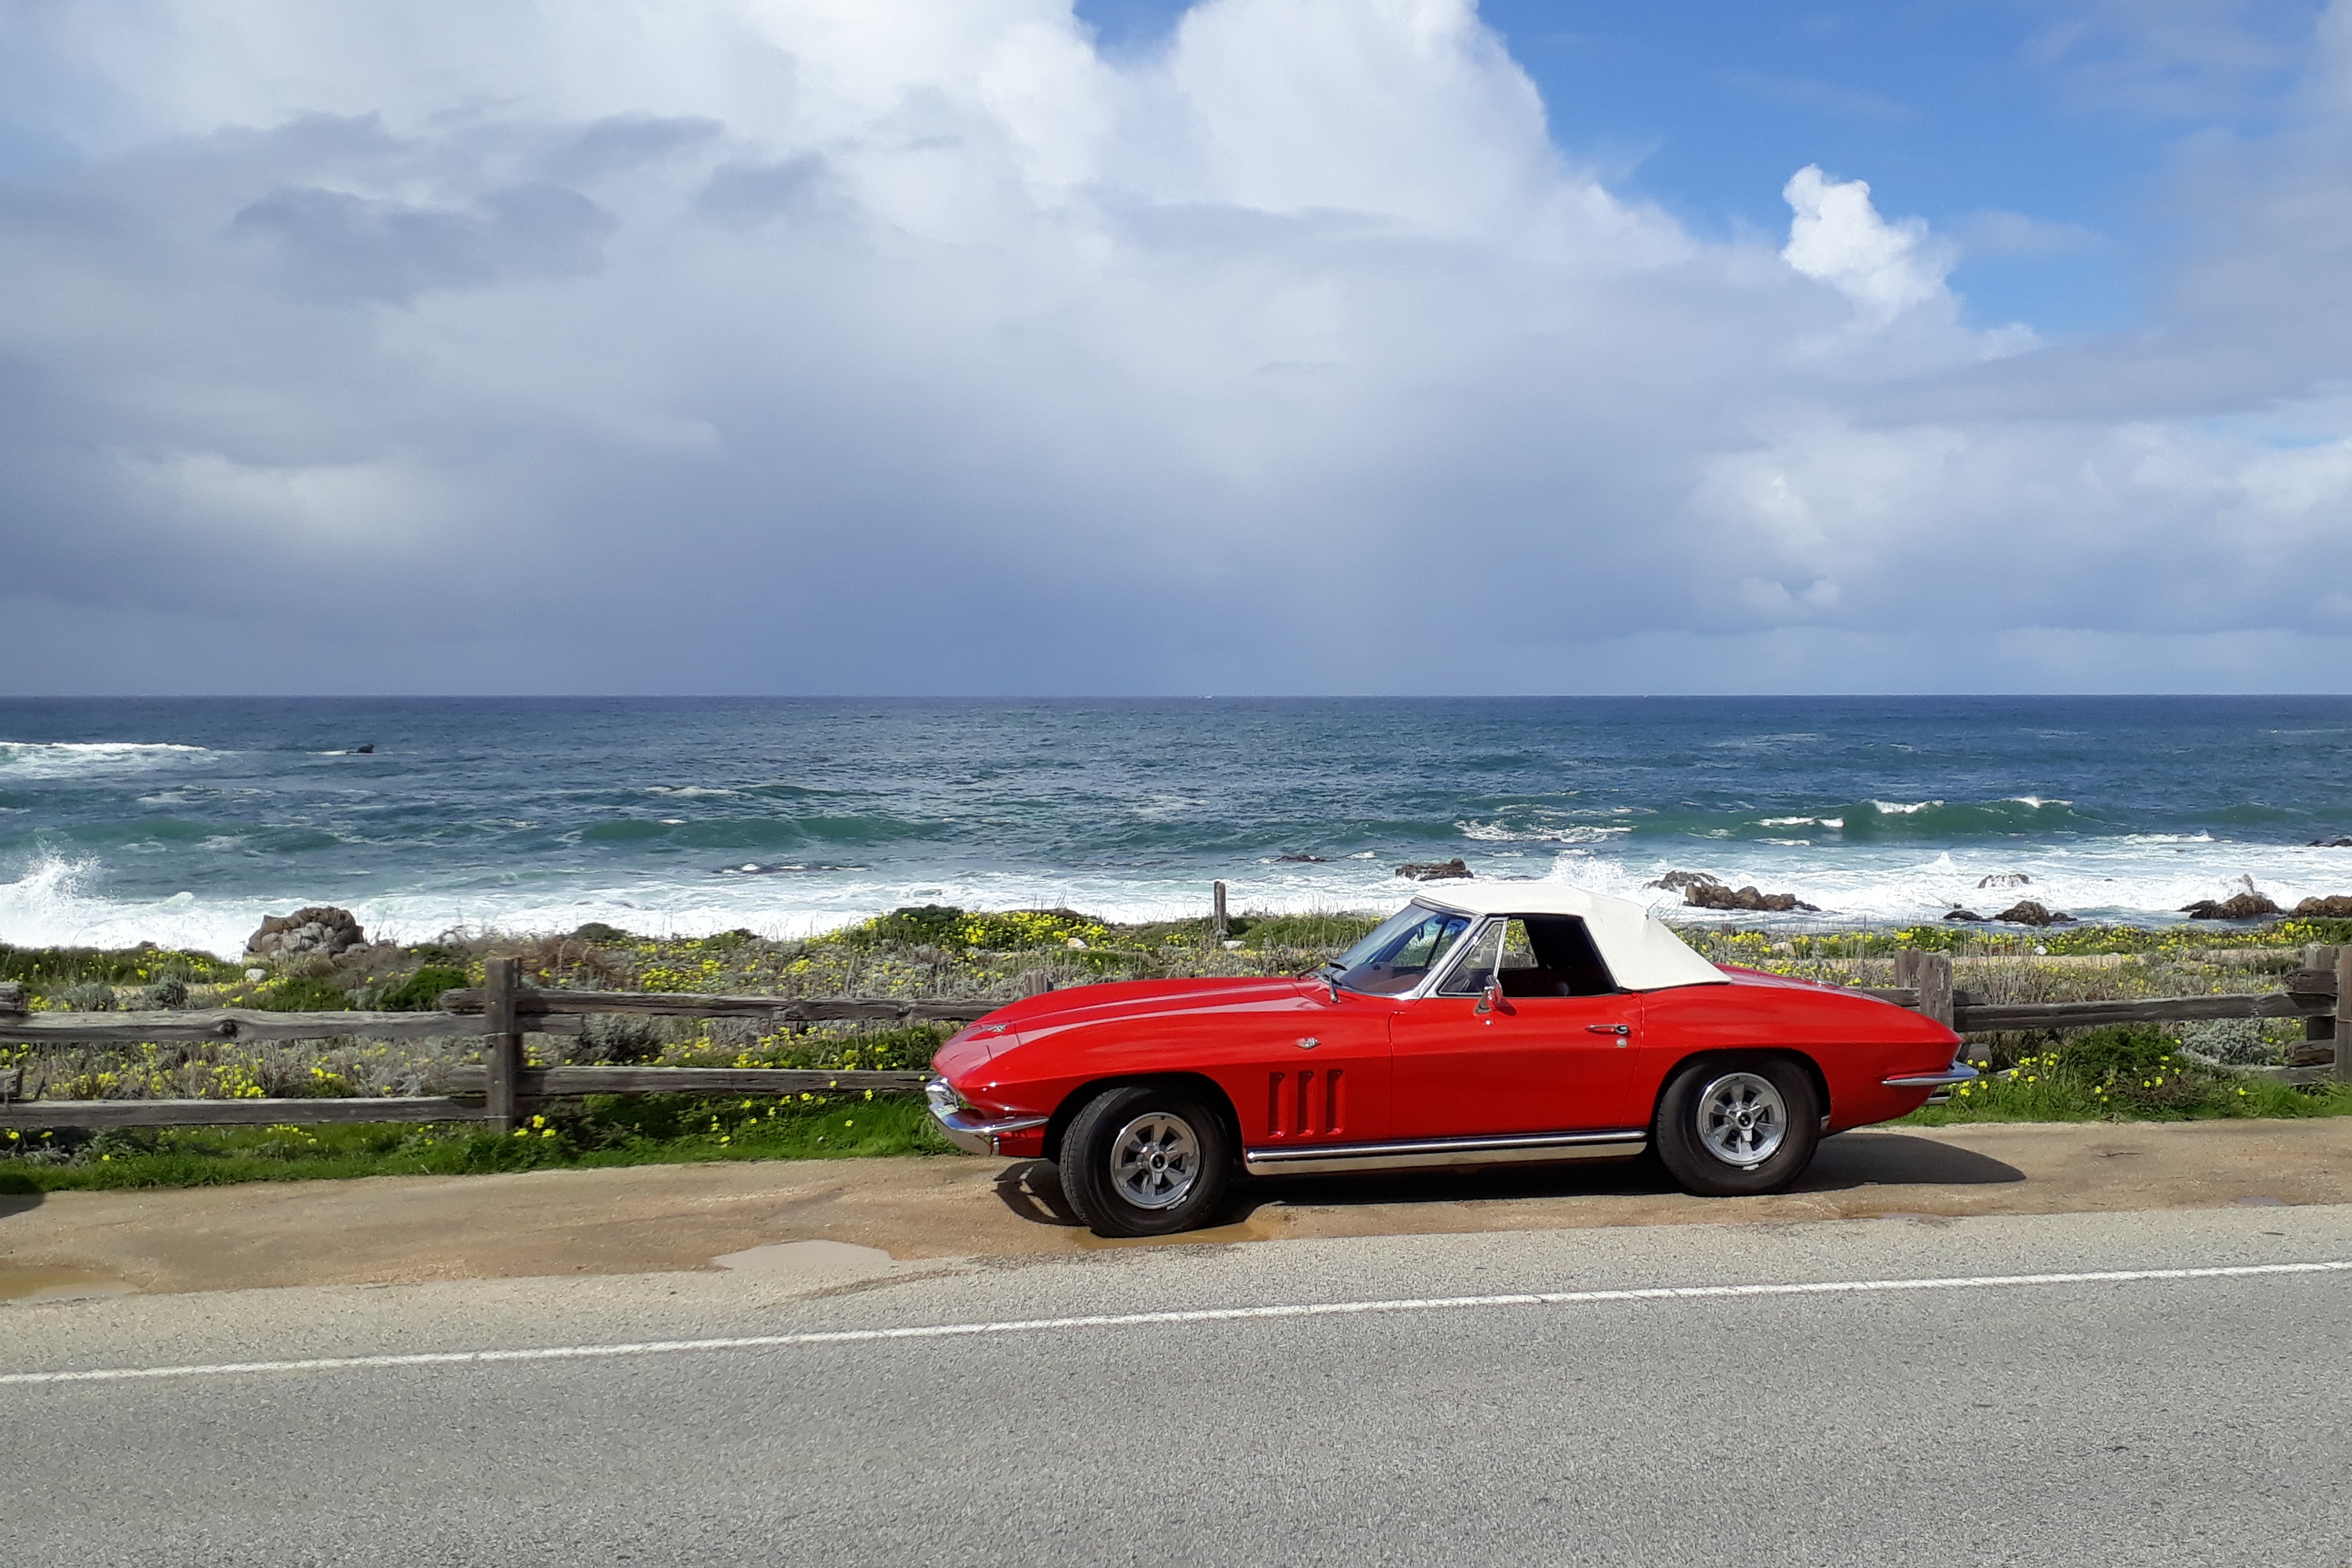 Corvette at the Beach